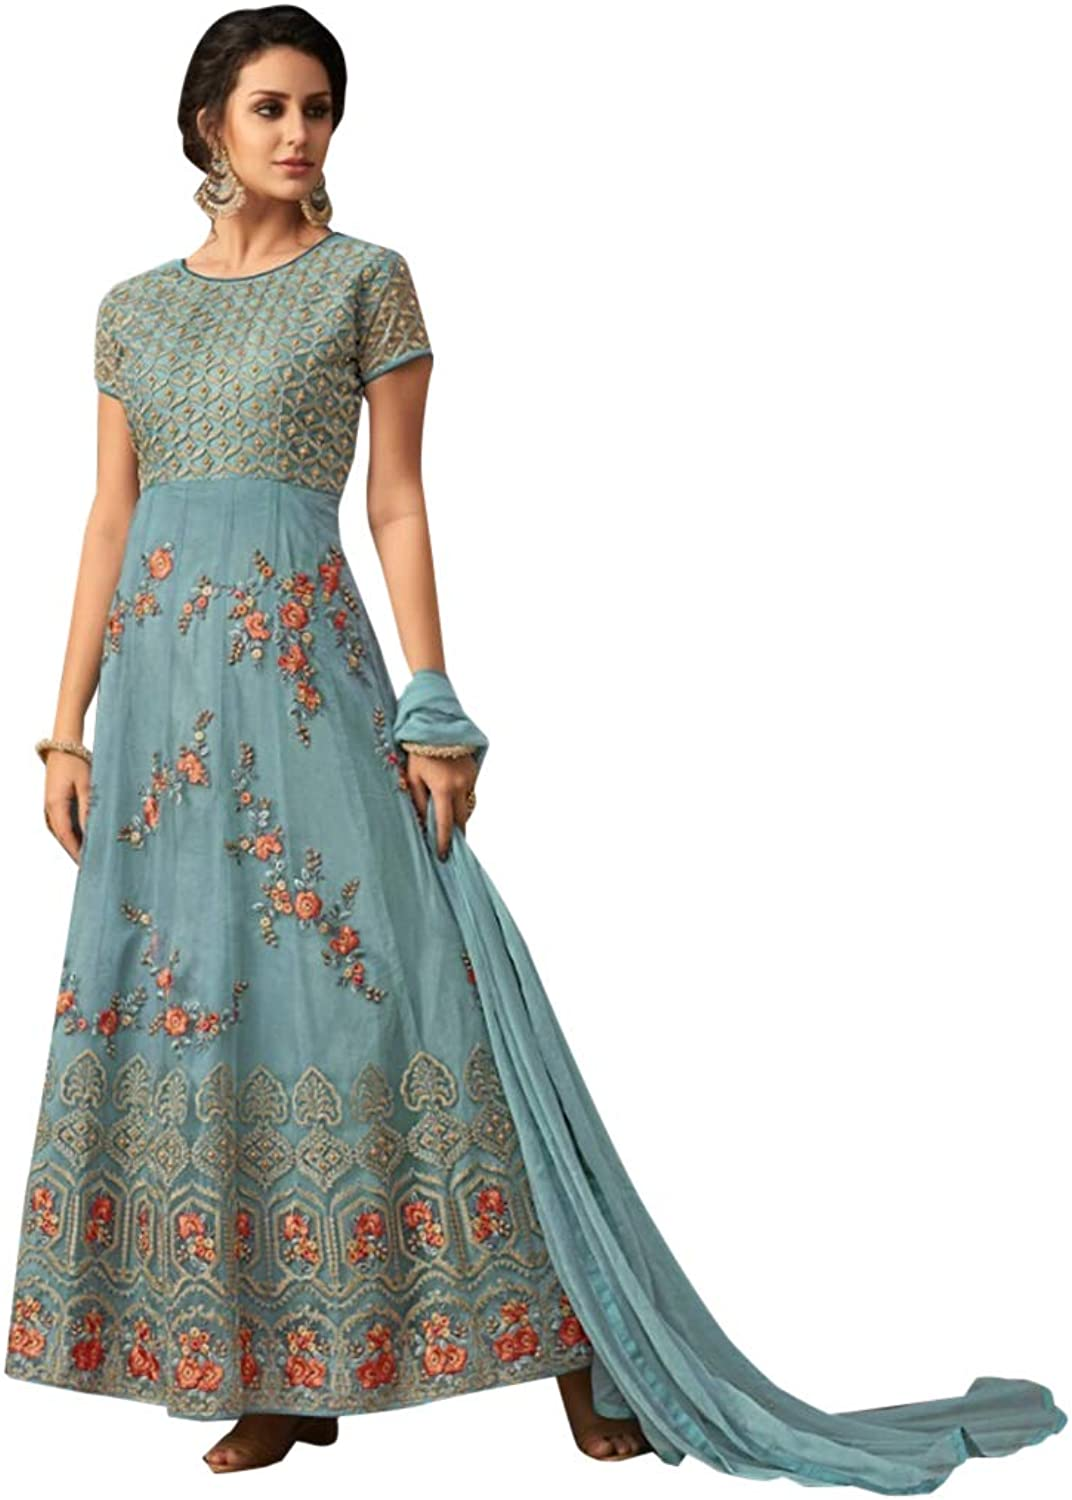 Indian Ethnic Heavy Floral Anarkali Salwar Kameez Suit Wedding Wear 7321